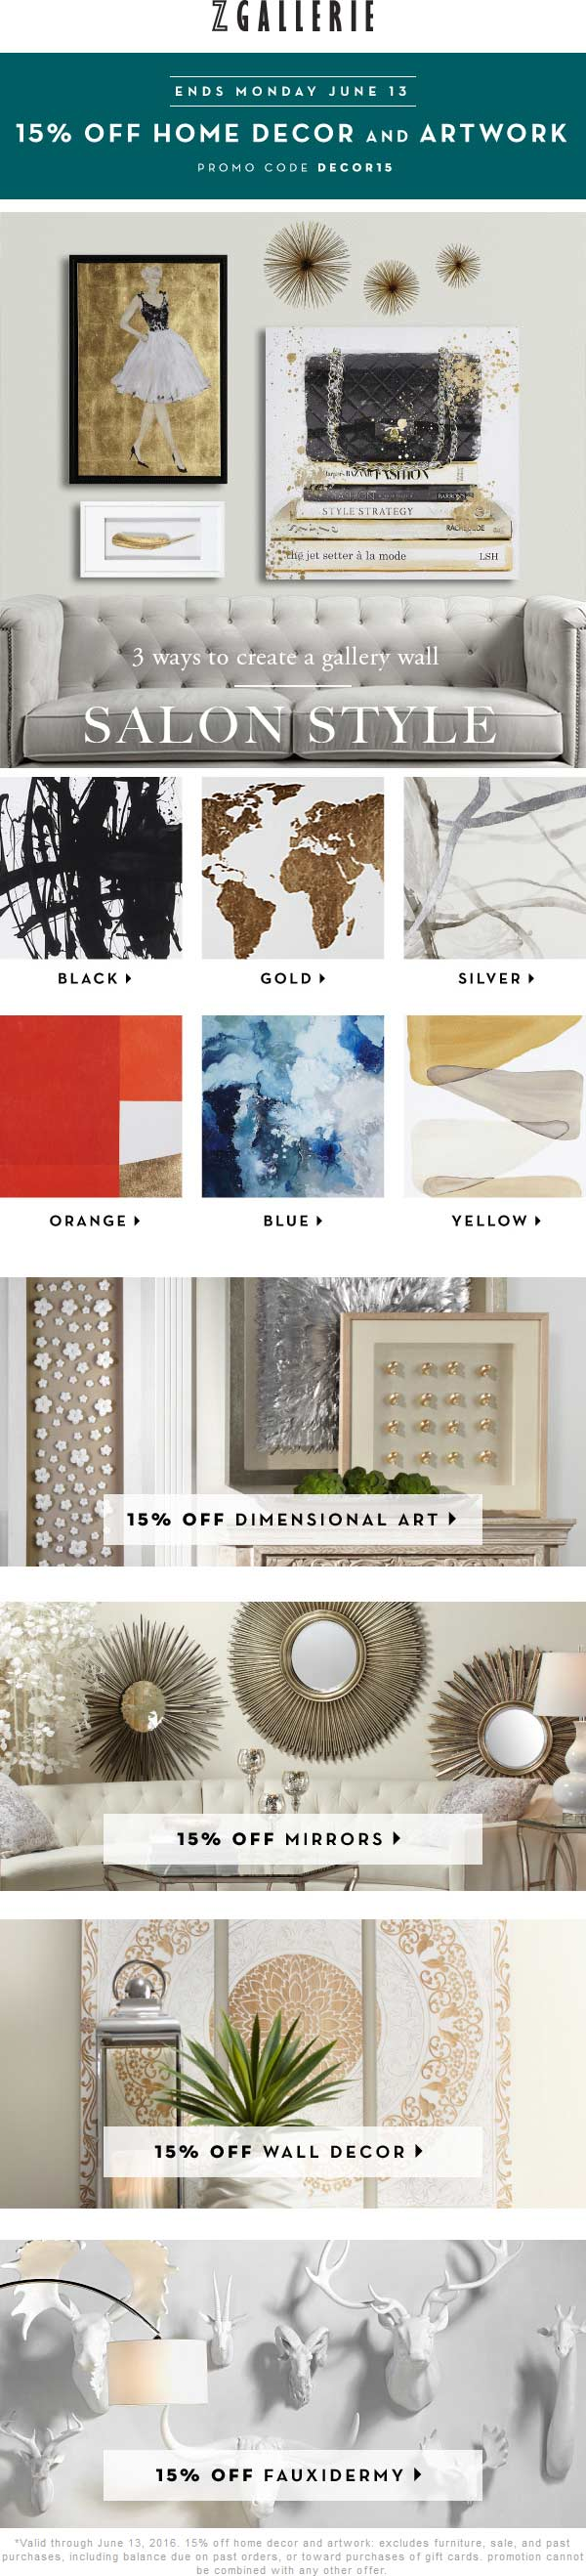 Z Gallerie Coupon March 2018 15% off decor & more at Z Gallerie, or online via promo code DECOR15